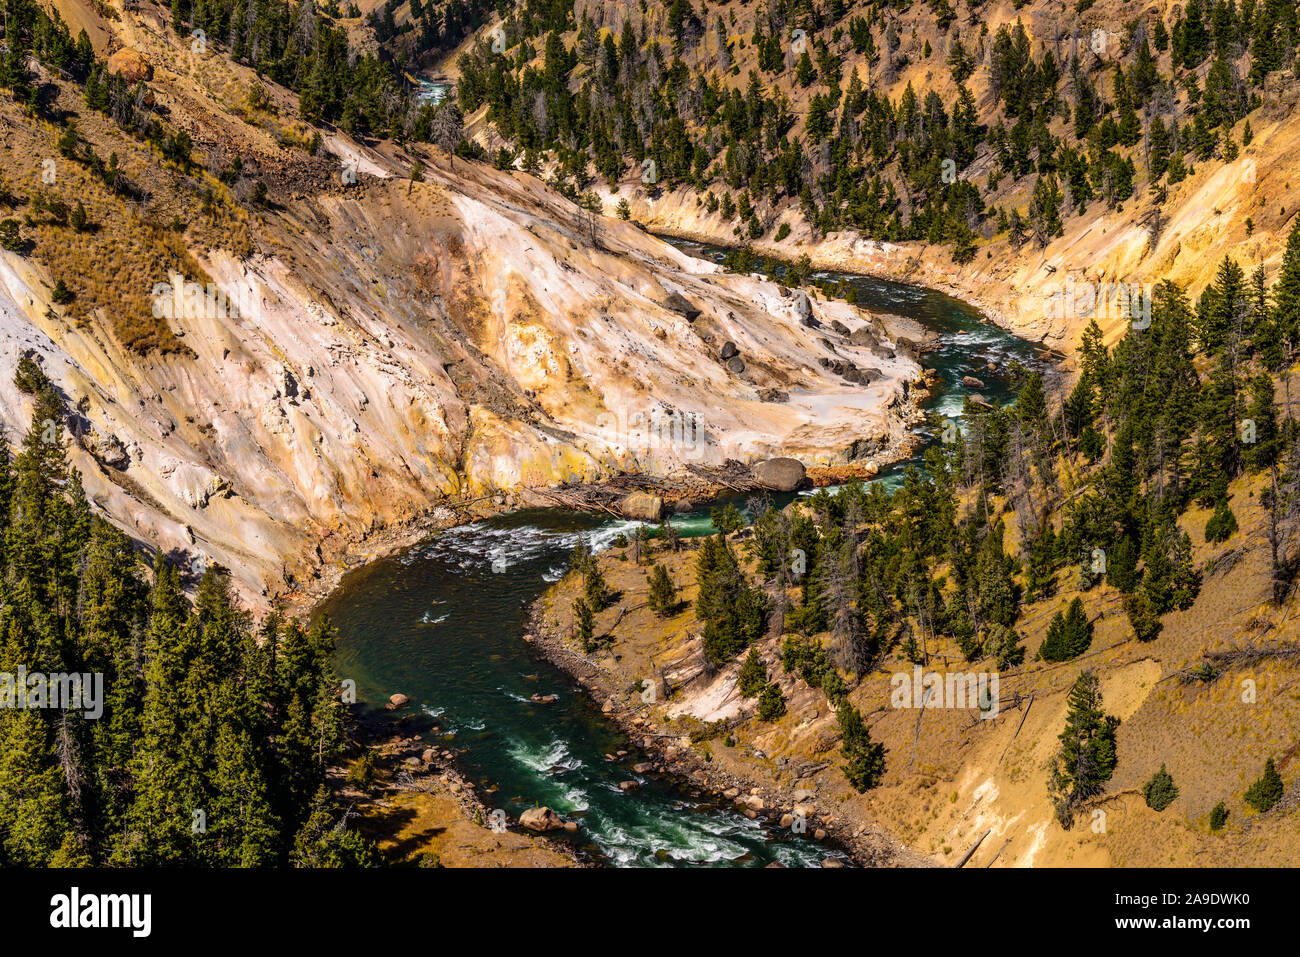 Usa Wyoming Yellowstone National Park Tower Roosevelt Yellowstone River Calcite Springs Stock Photo Alamy